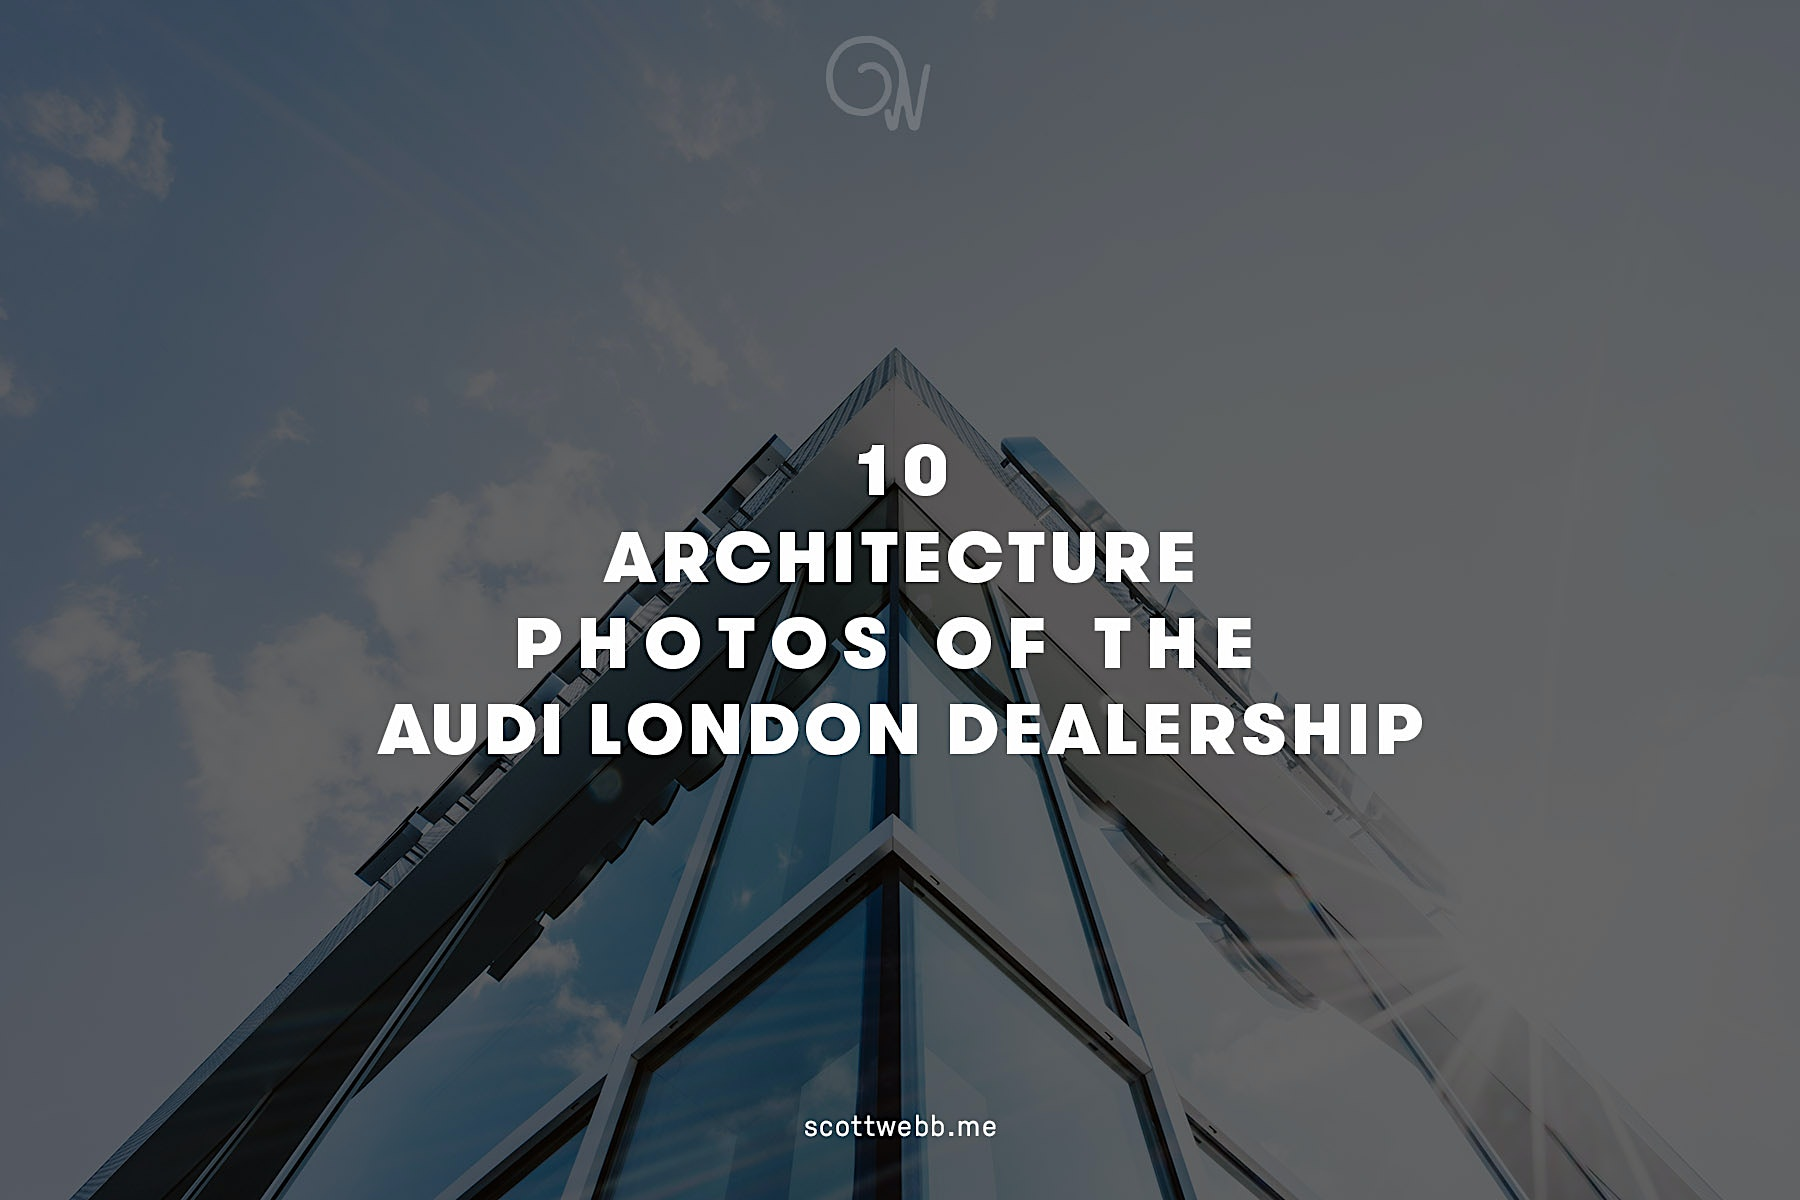 10 Architecture photos of the Audi London Dealership by Scott Webb